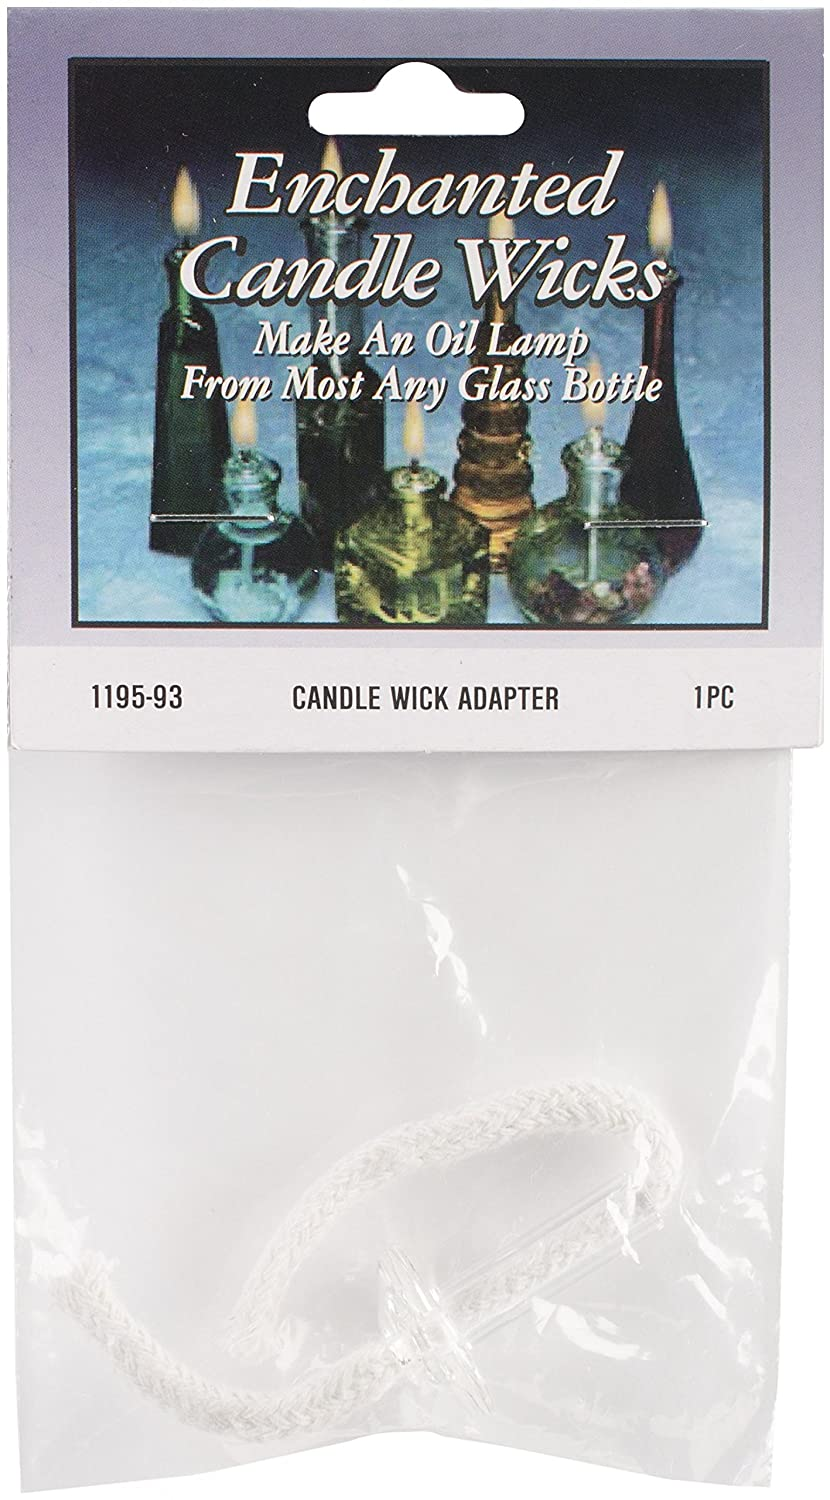 Wick Adapter in Glass(1.5 x 1 inches), 5 inch Cord - 1 piece pack Darice 1195-93